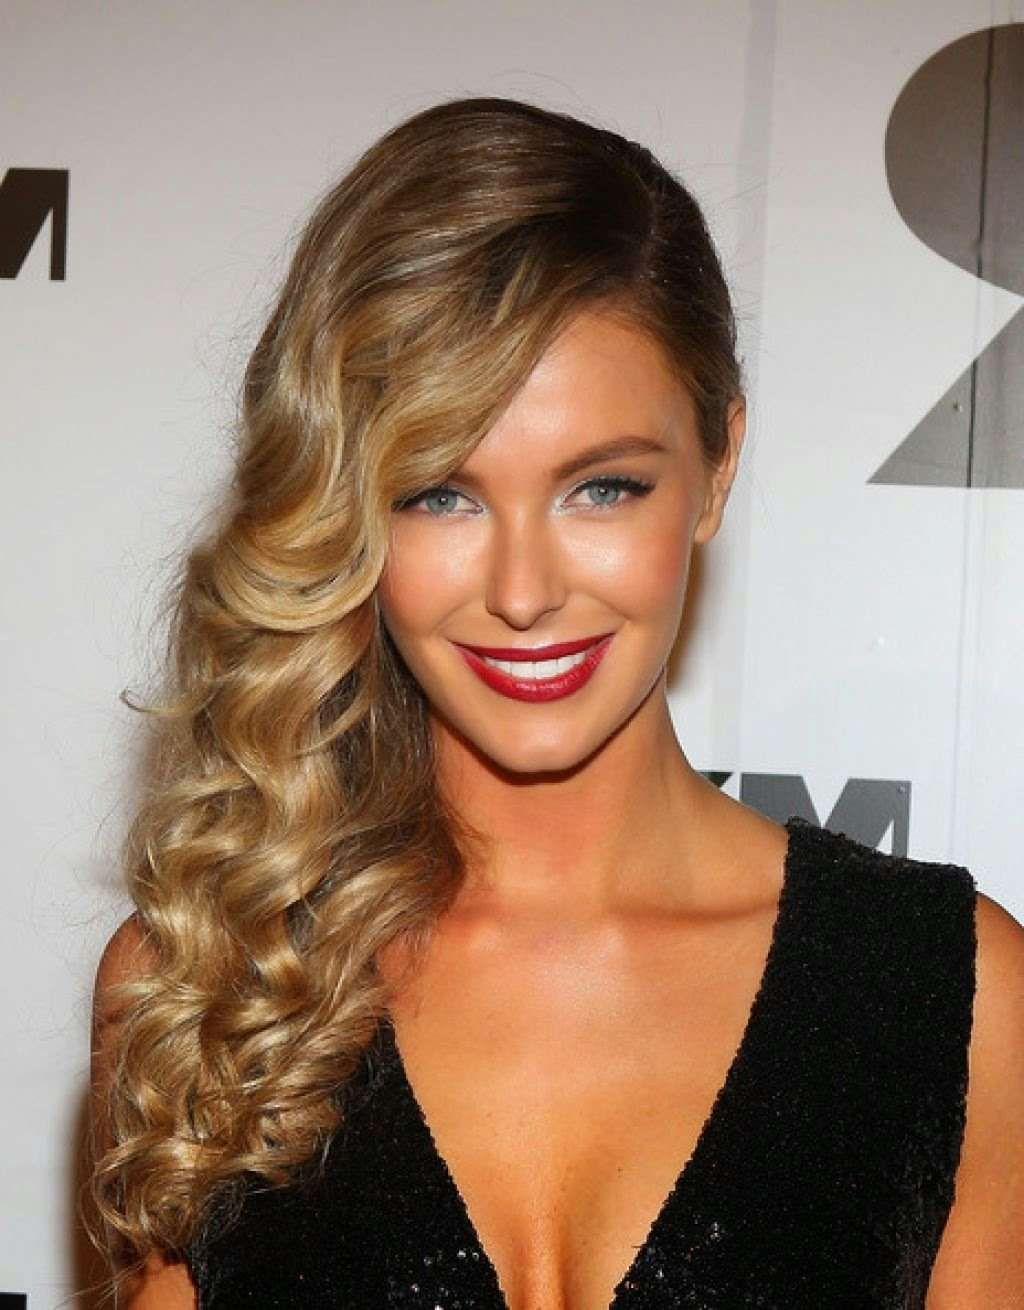 Long sideswept hair with tight curls onelady hair